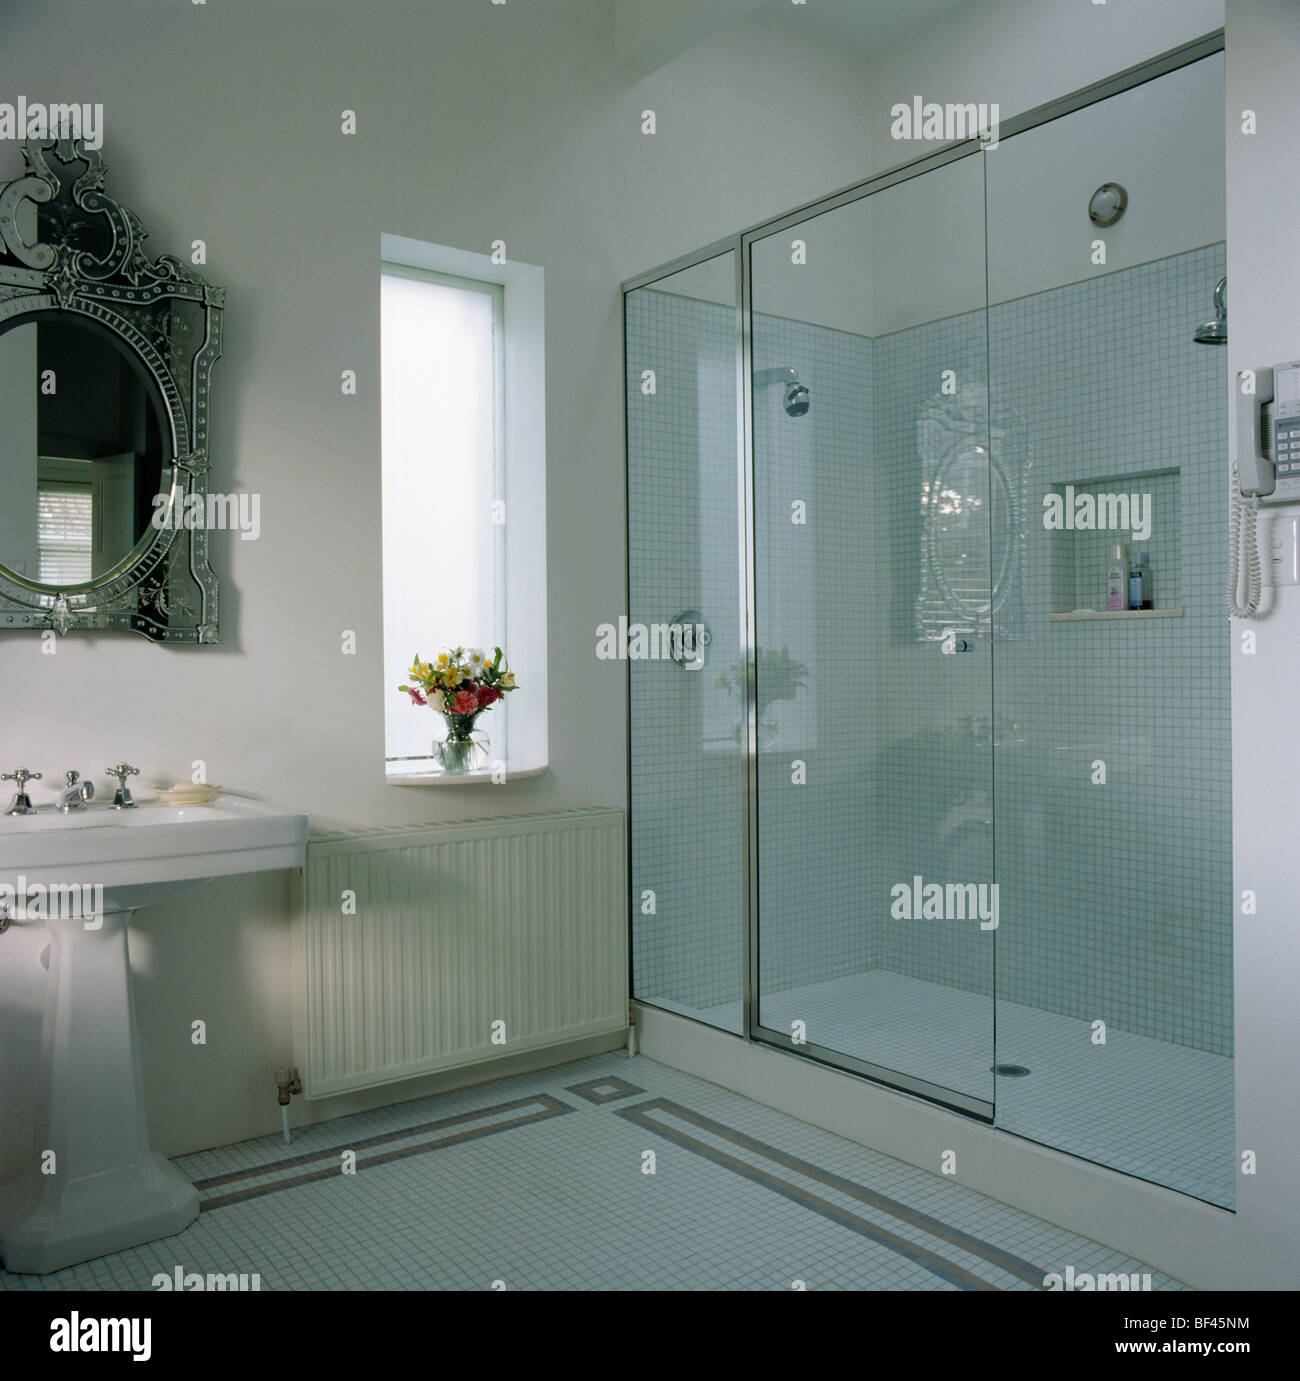 Glass Wall And Door To Walk-in Shower Cabinet In Modern White Stock Photo: 26522544